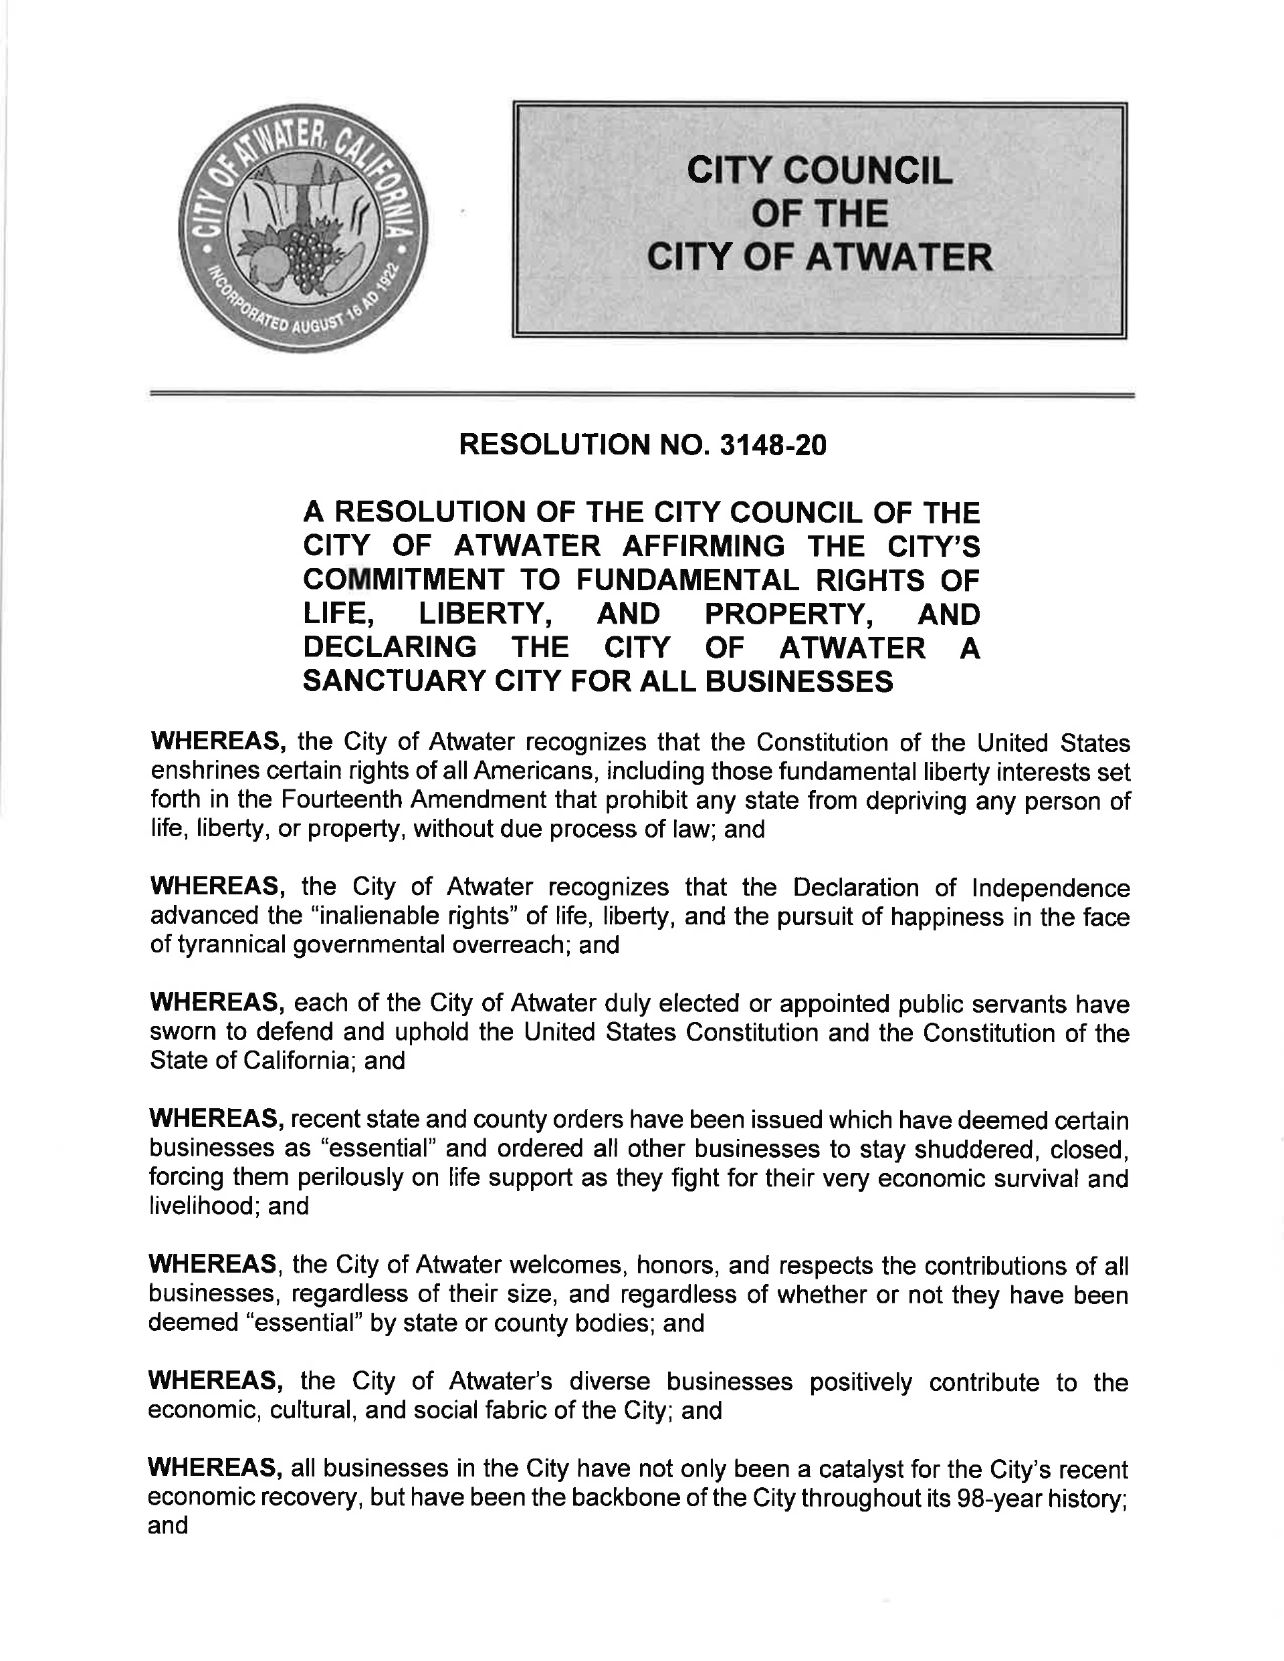 Atwater Resolution No. 3148-20 - pg 1